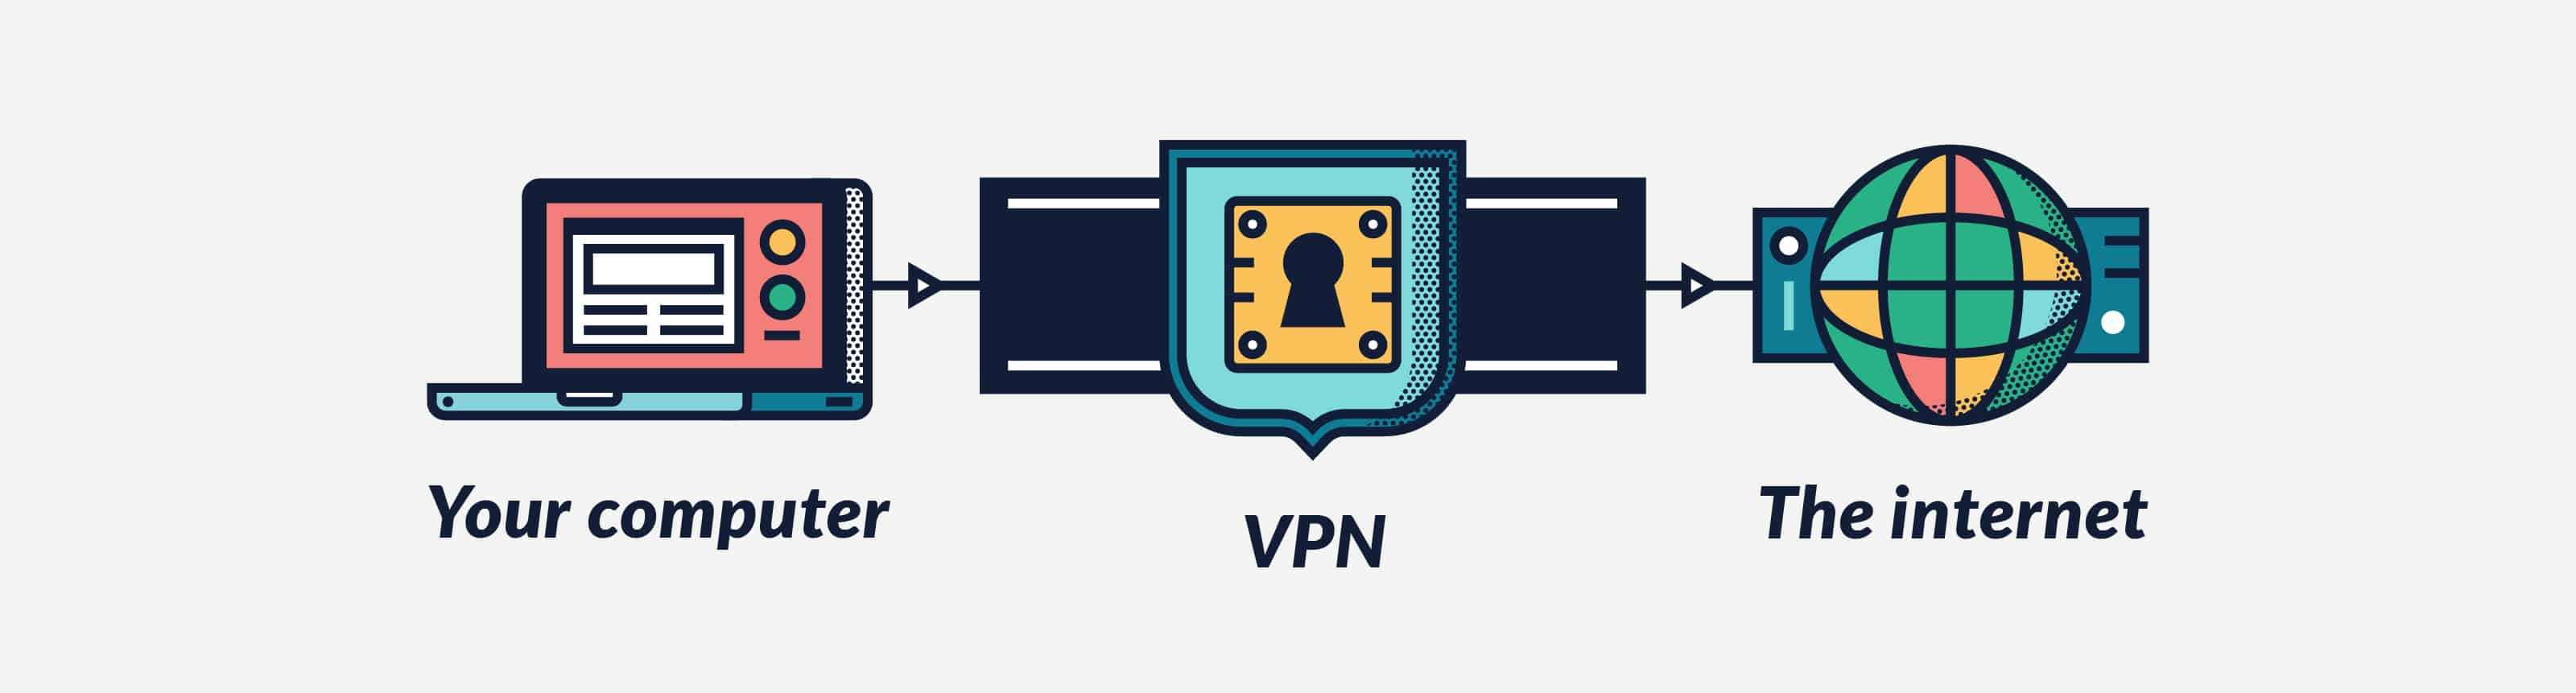 Tor vs. VPN: Which Should You Use? | TheBestVPN.com